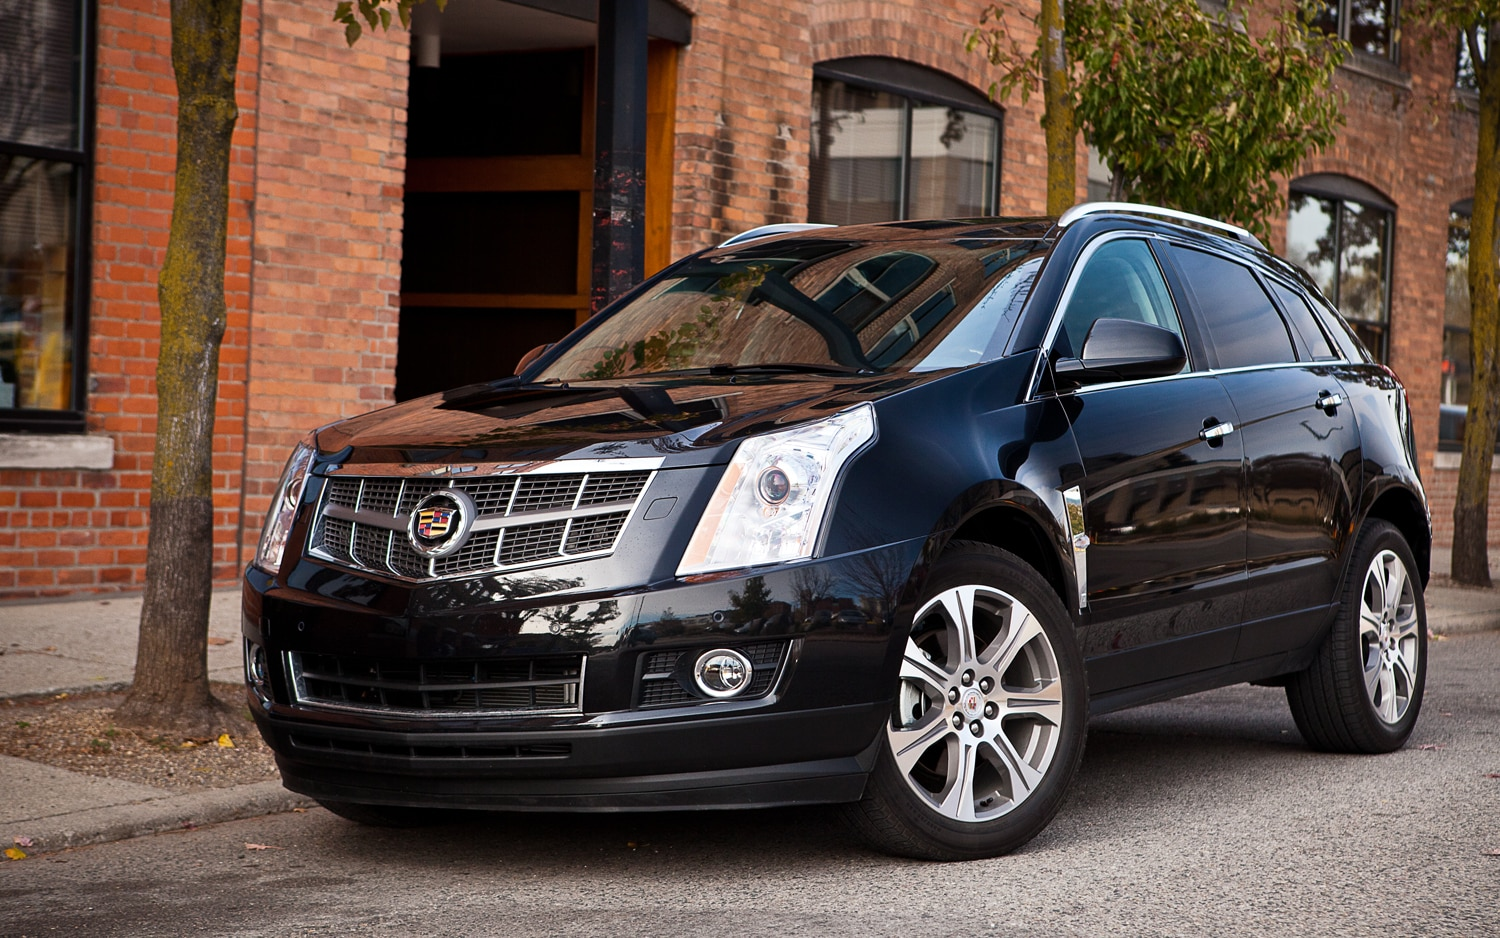 2012 Cadillac SRX AWD Premium Collection - Editors' Notebook